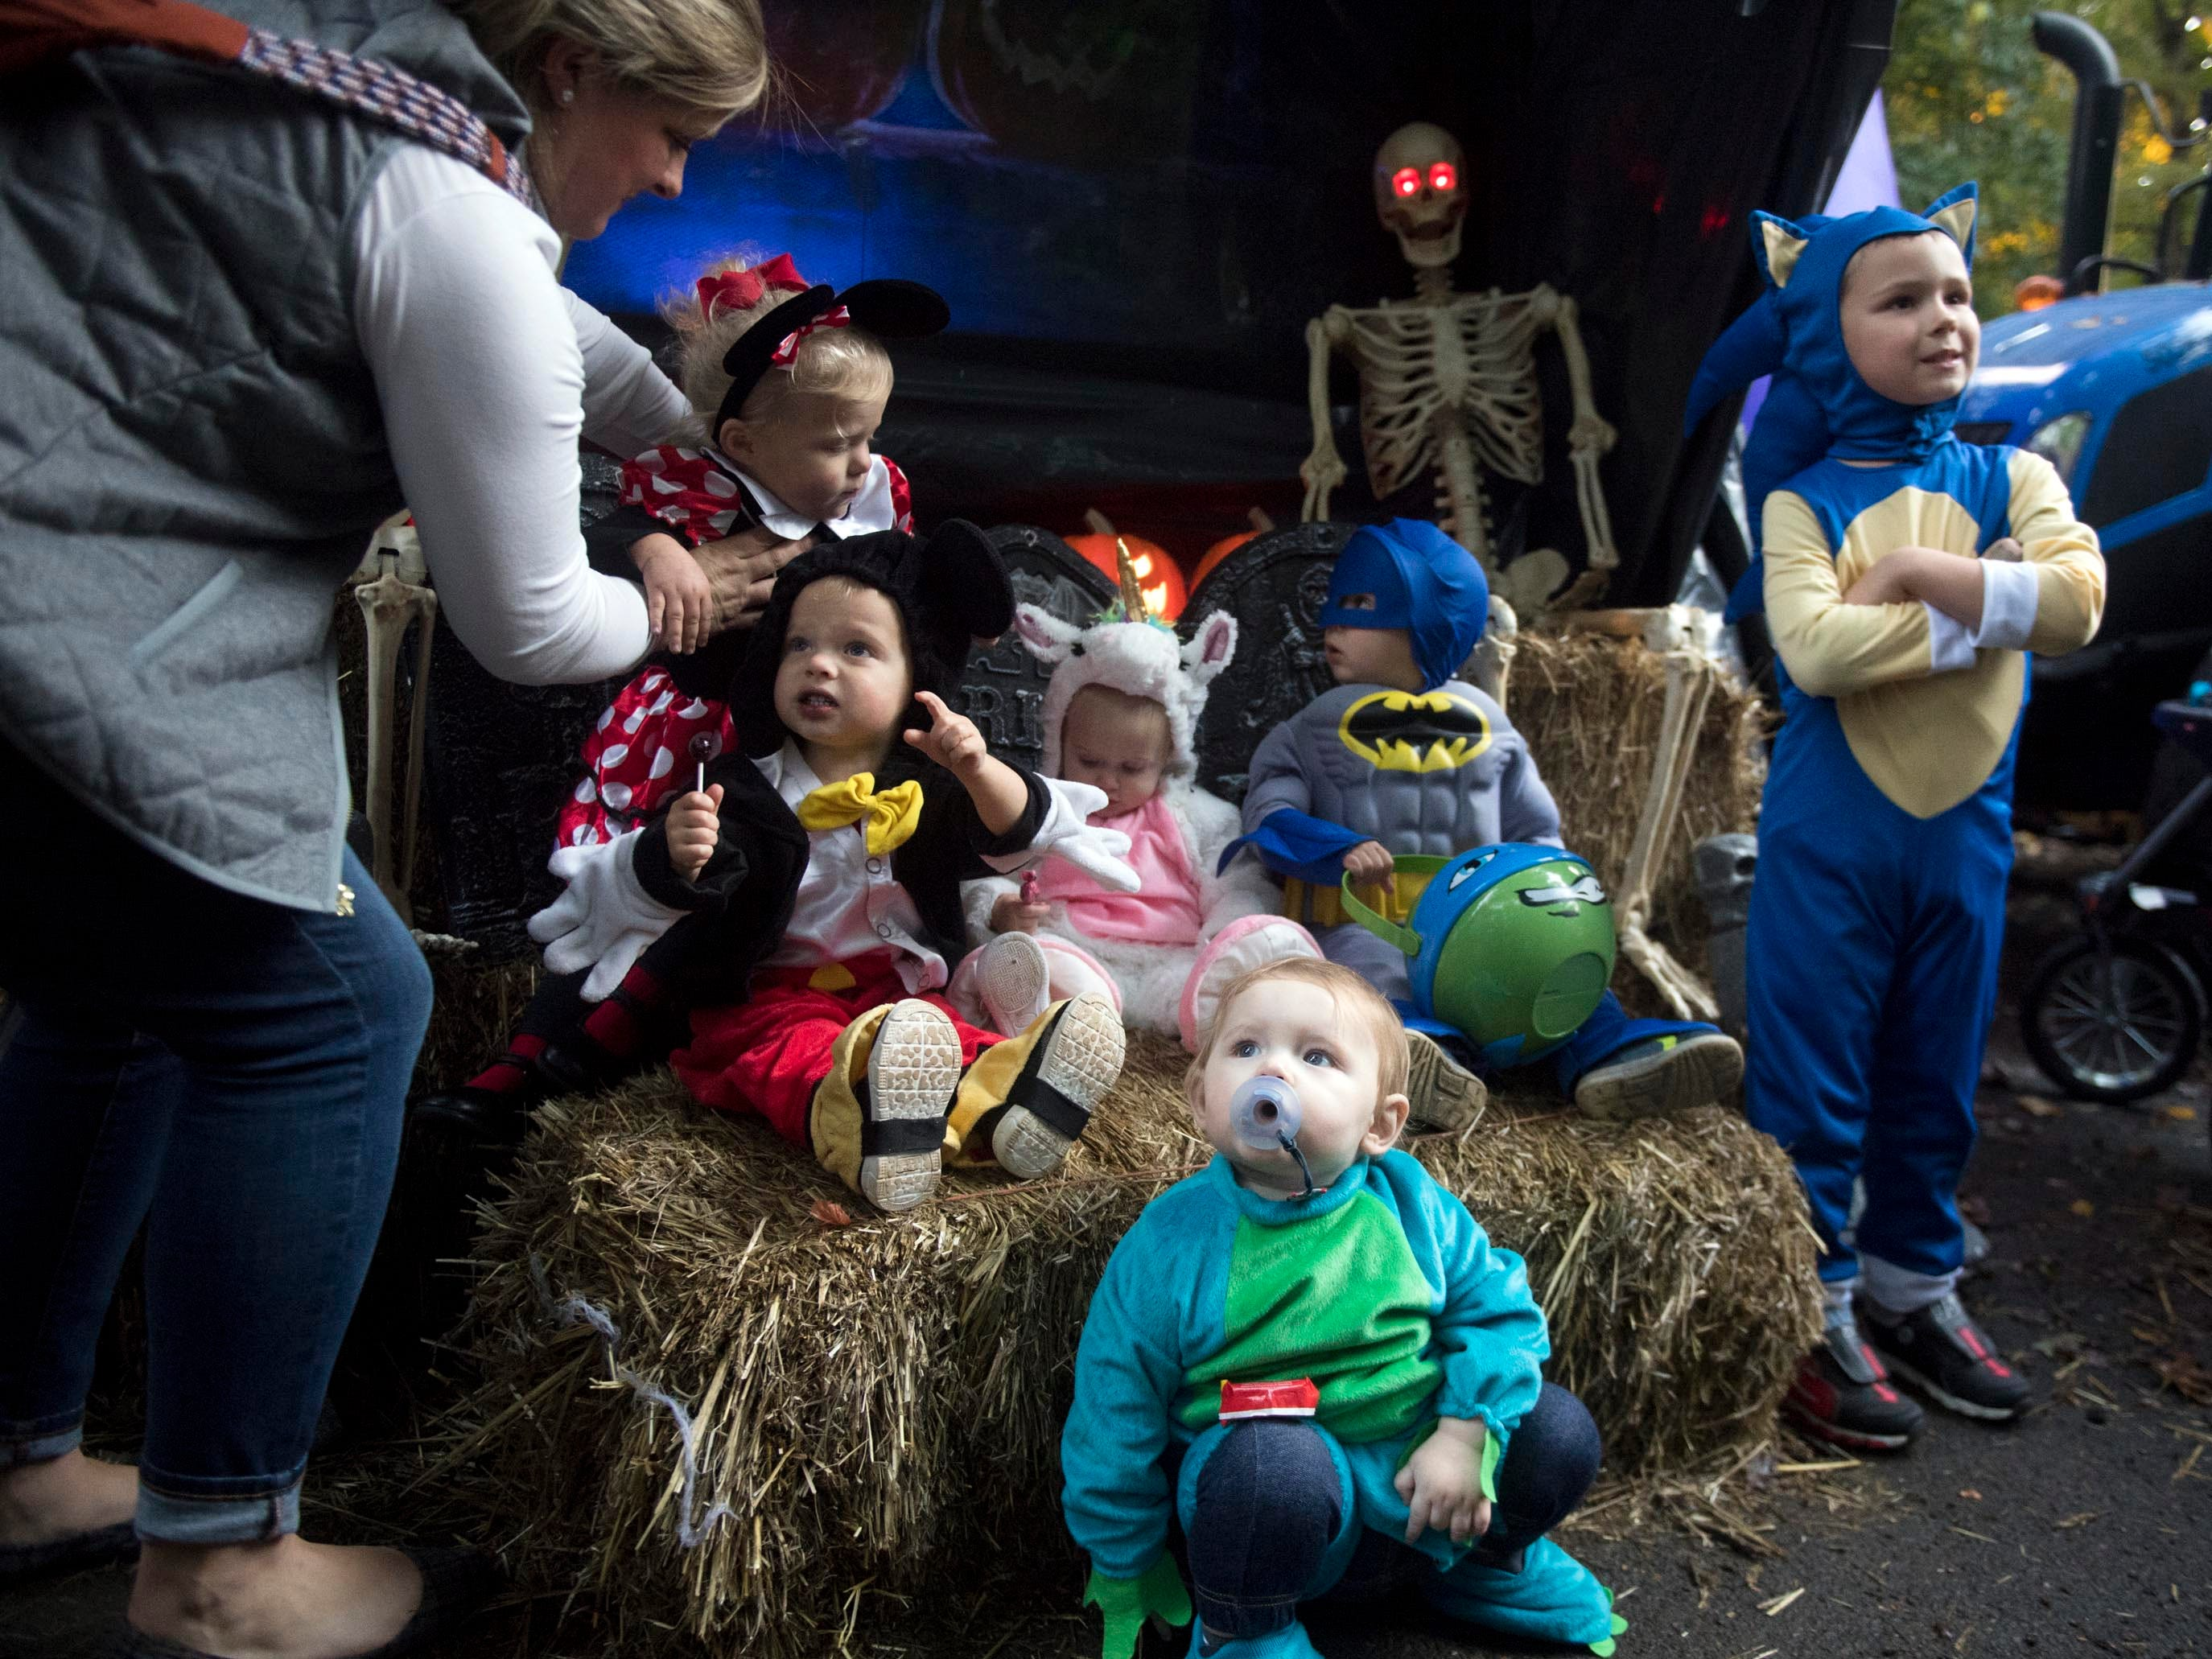 Children are gathered for a group photograph during Zoo Knoxville's Boo! at the Zoo in Saturday, October 20, 2018.